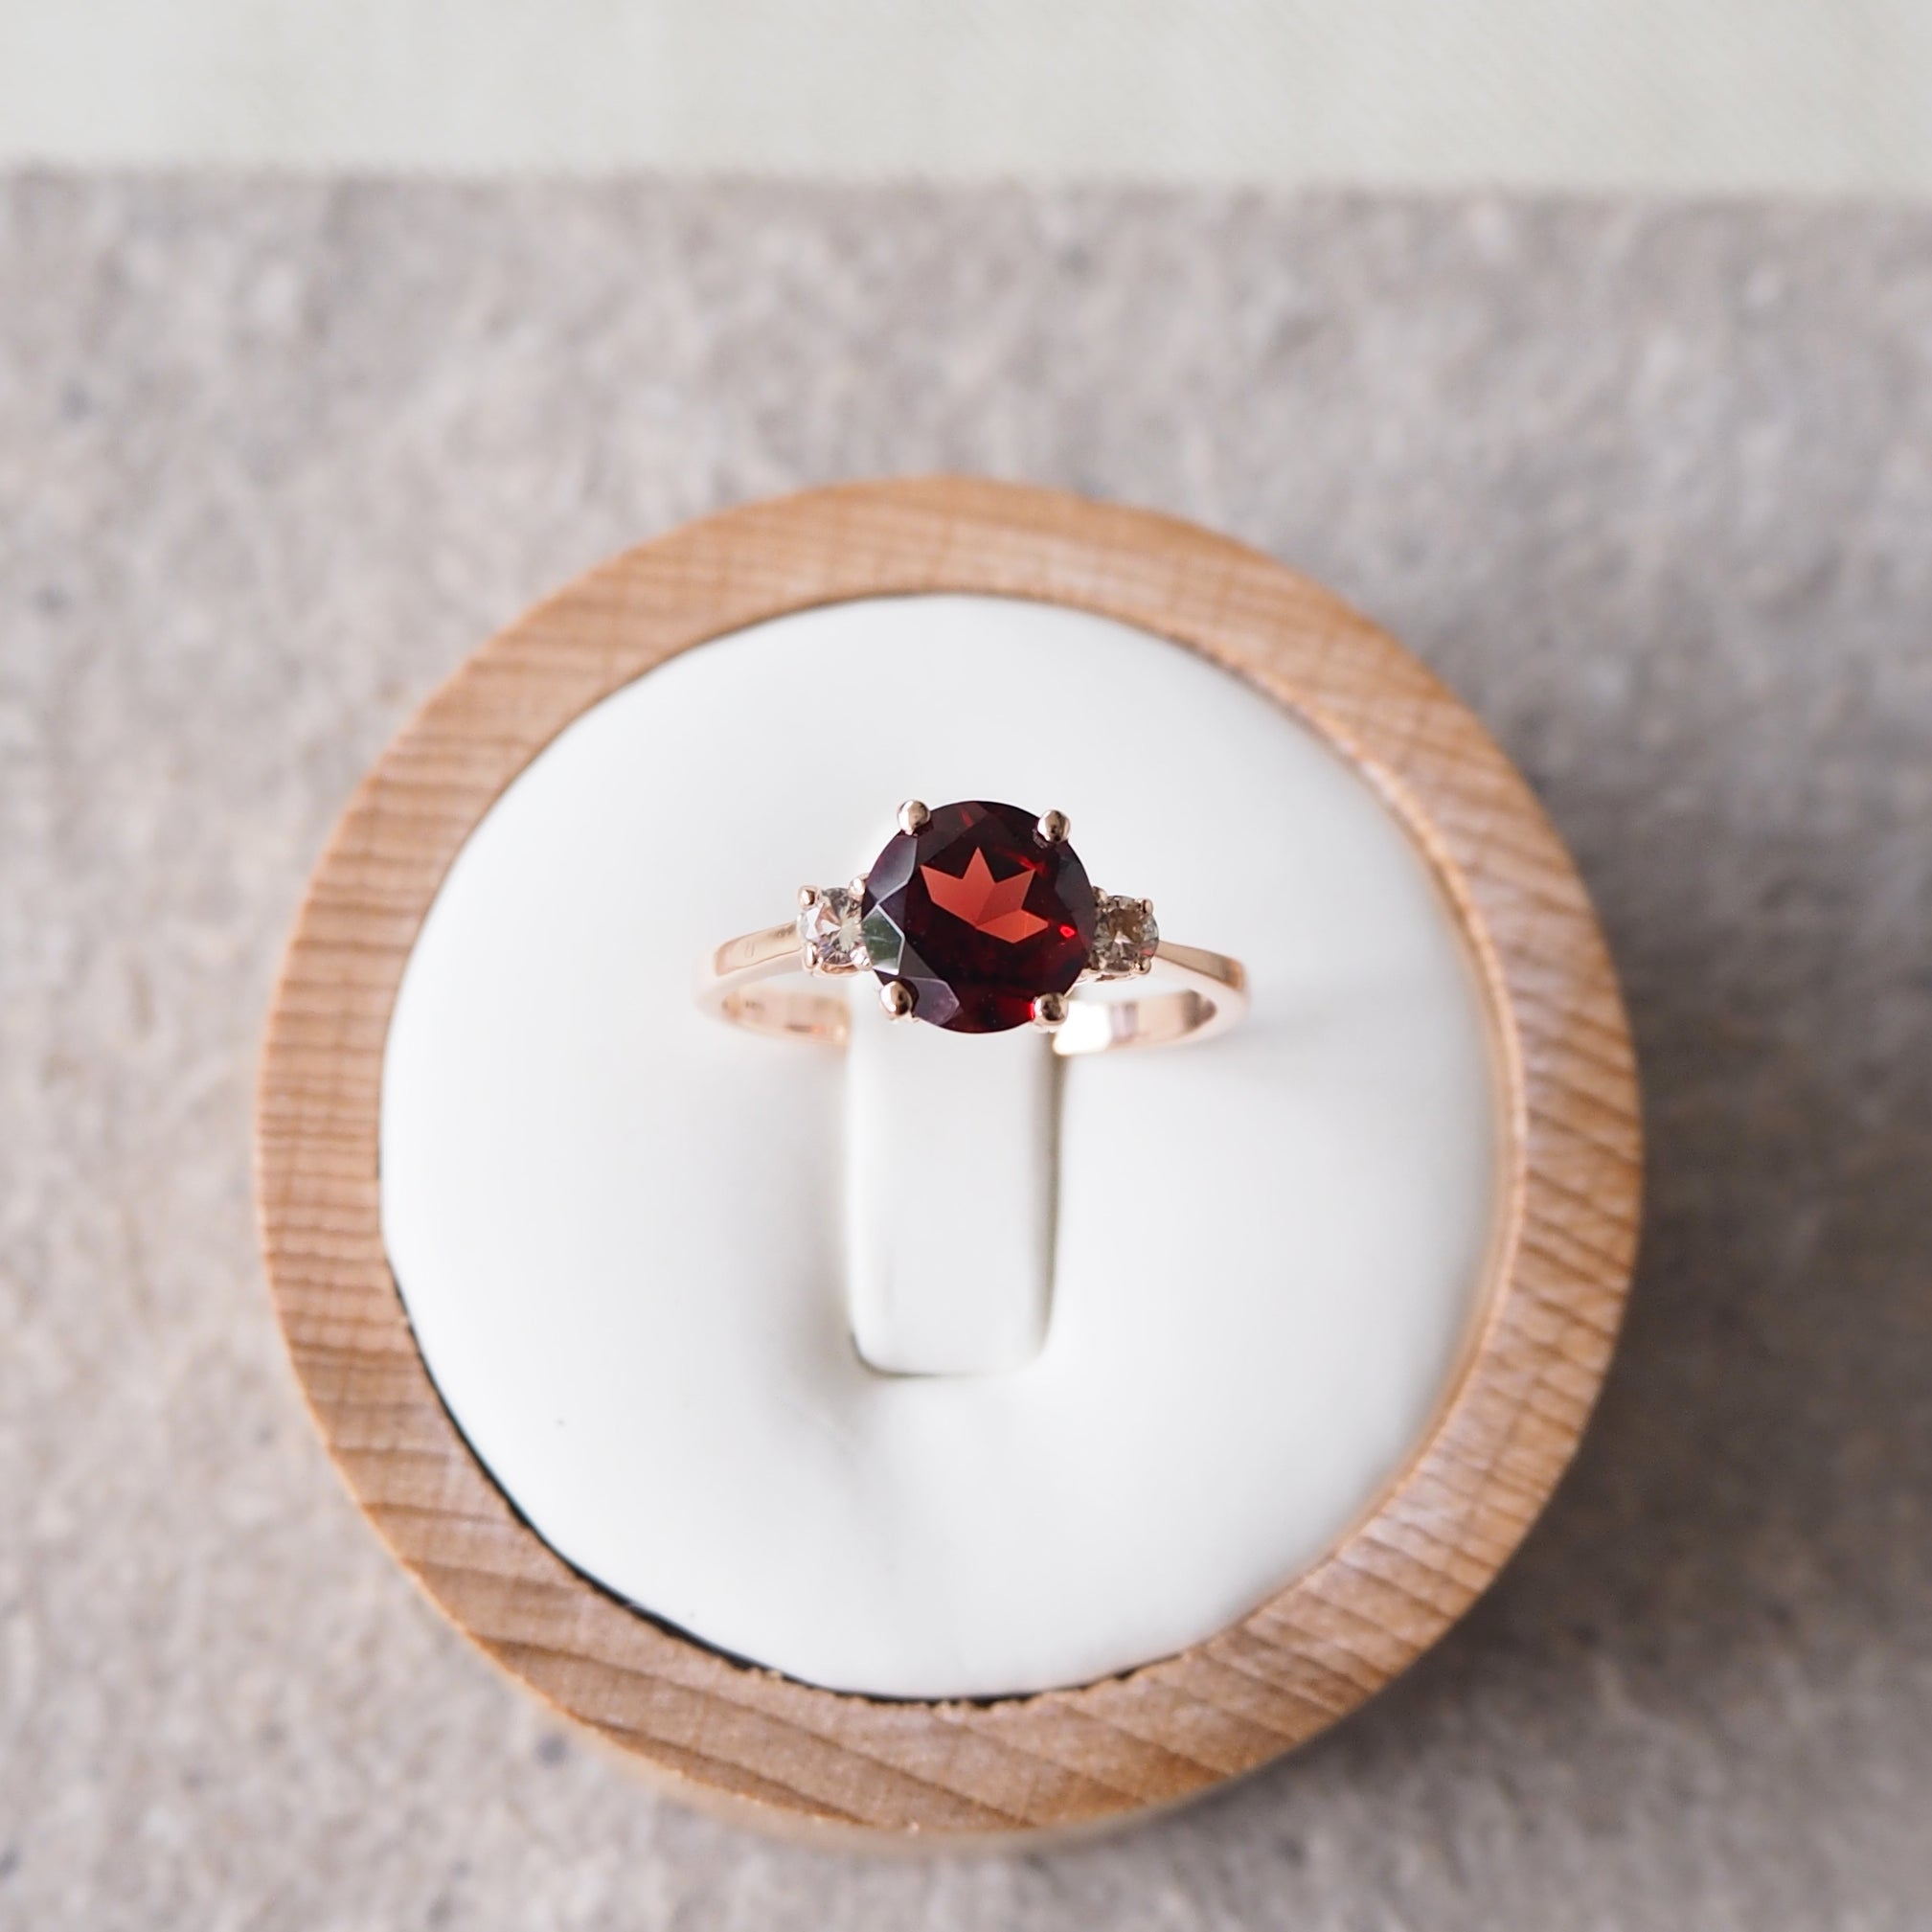 Scarlett Ring - Red Garnet